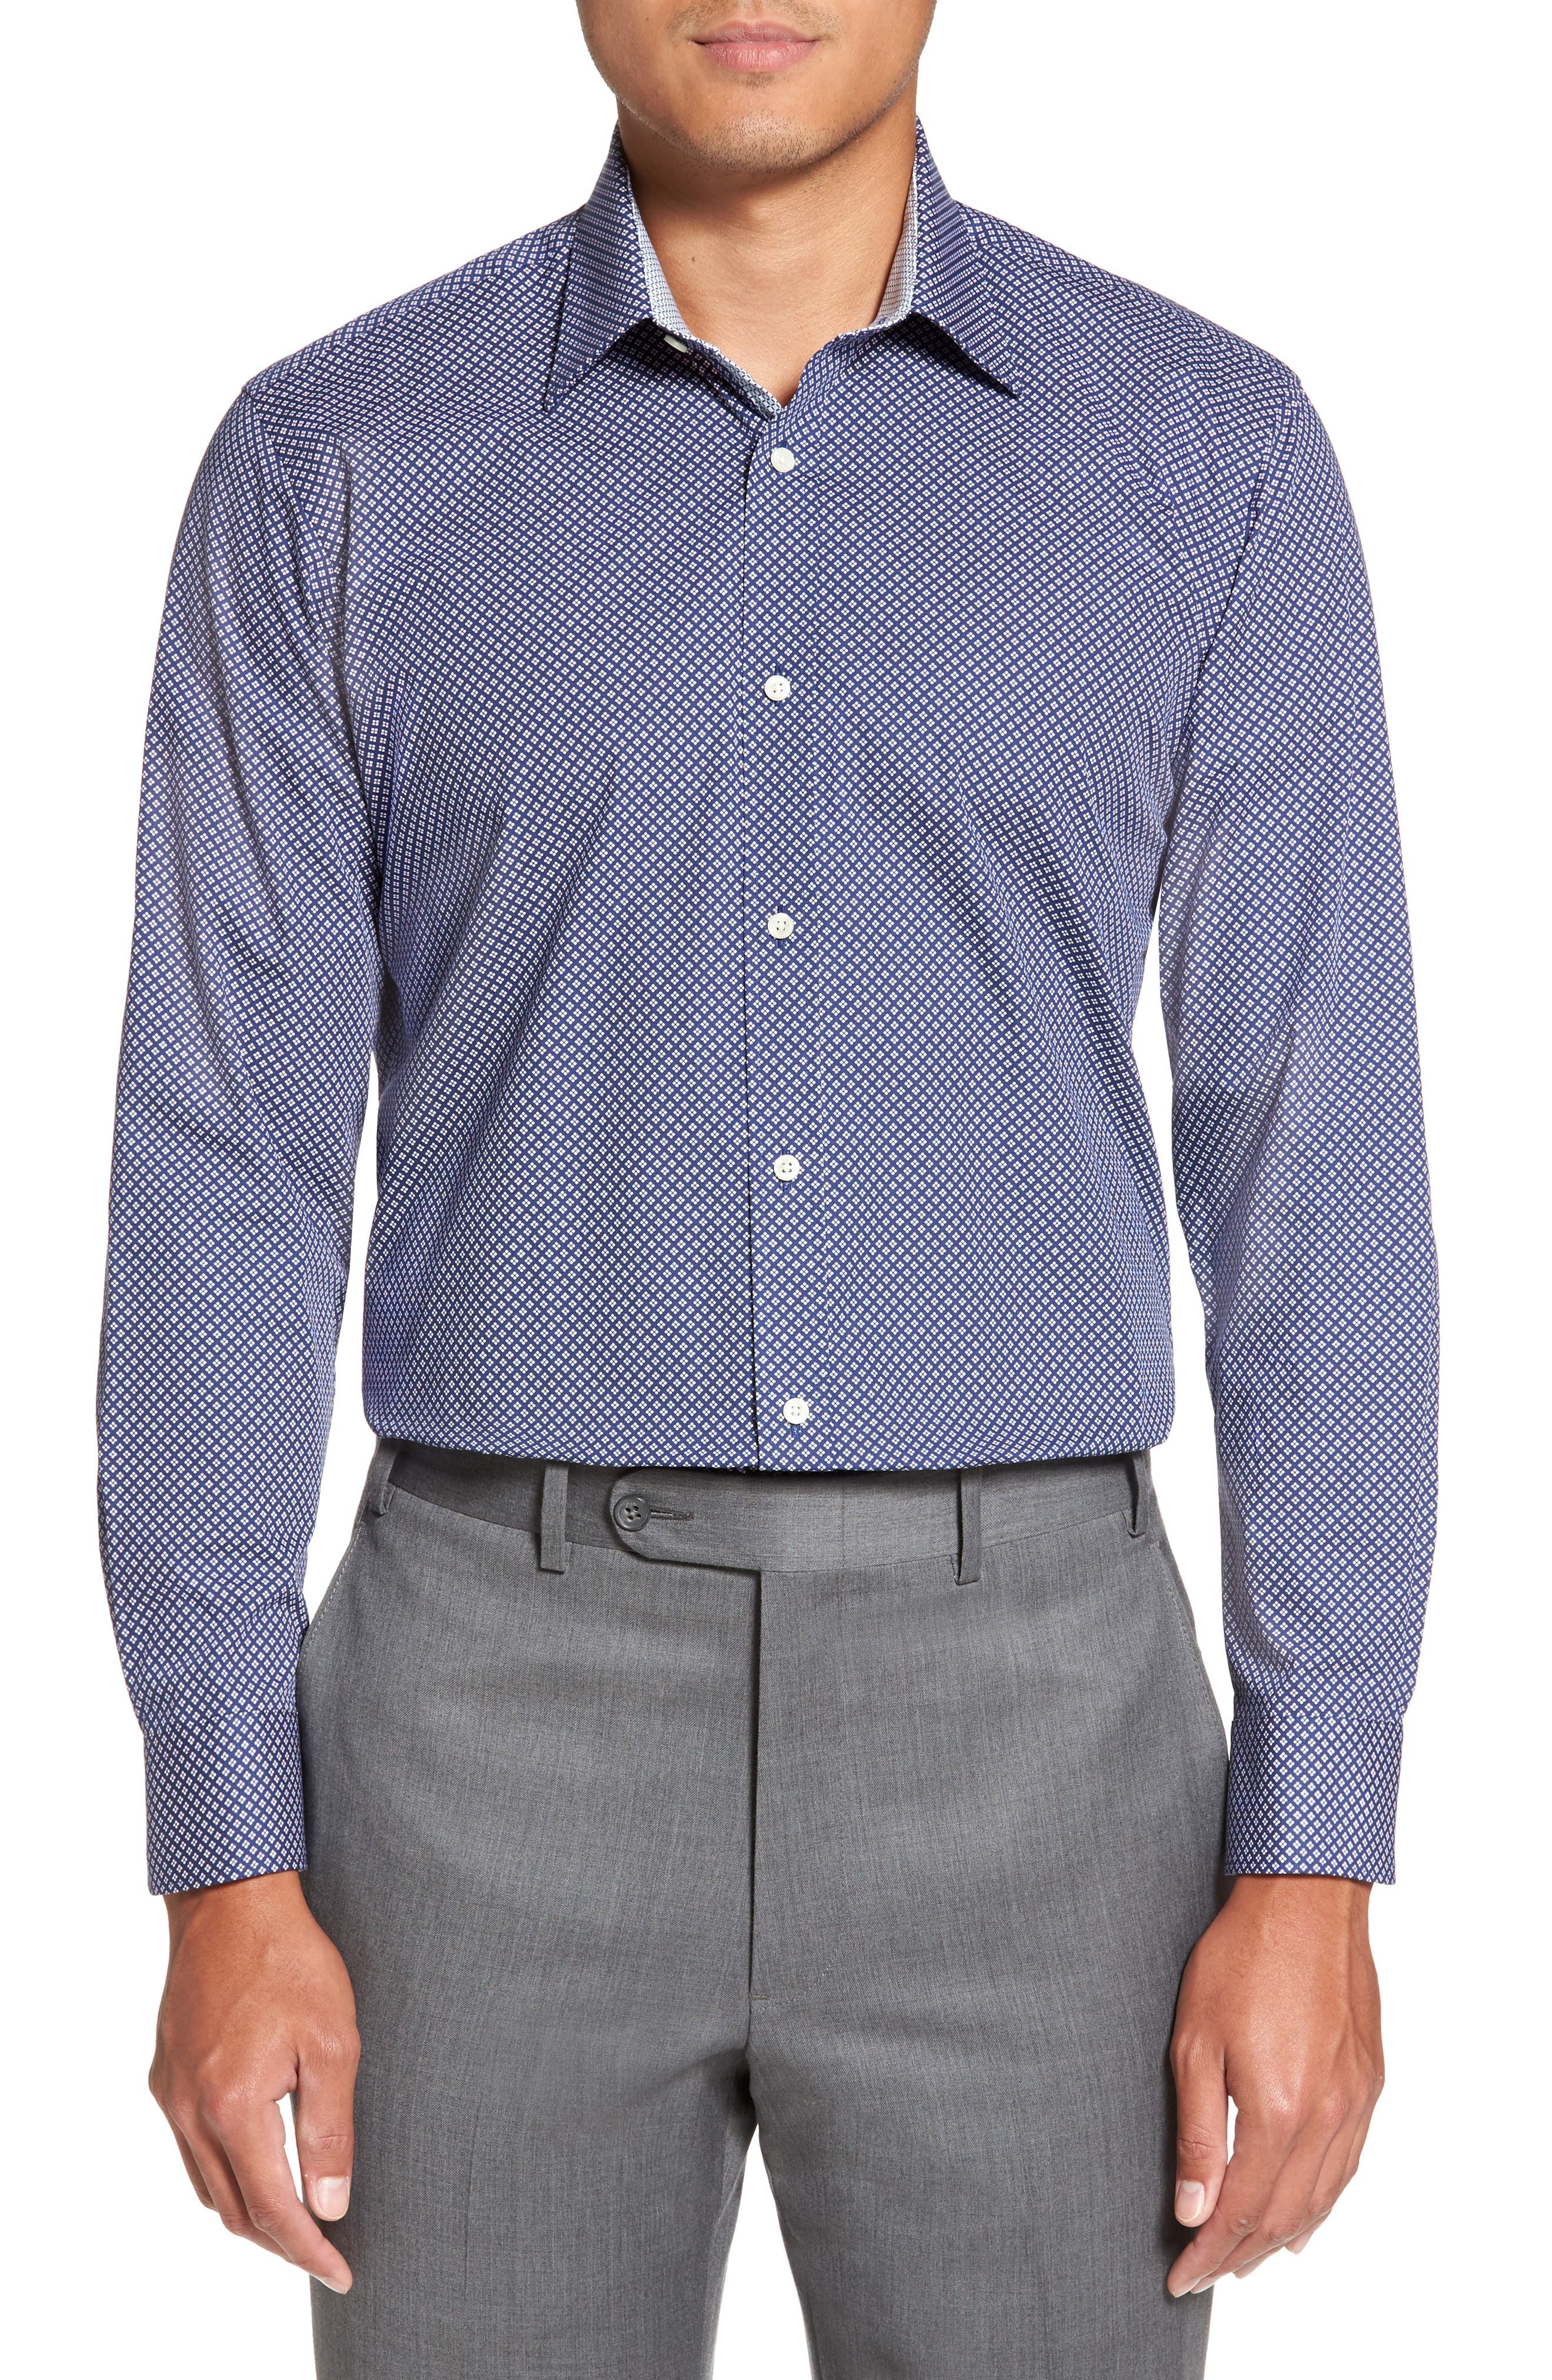 Agra Trim Fit Geometric Dress Shirt,                             Main thumbnail 1, color,                             410